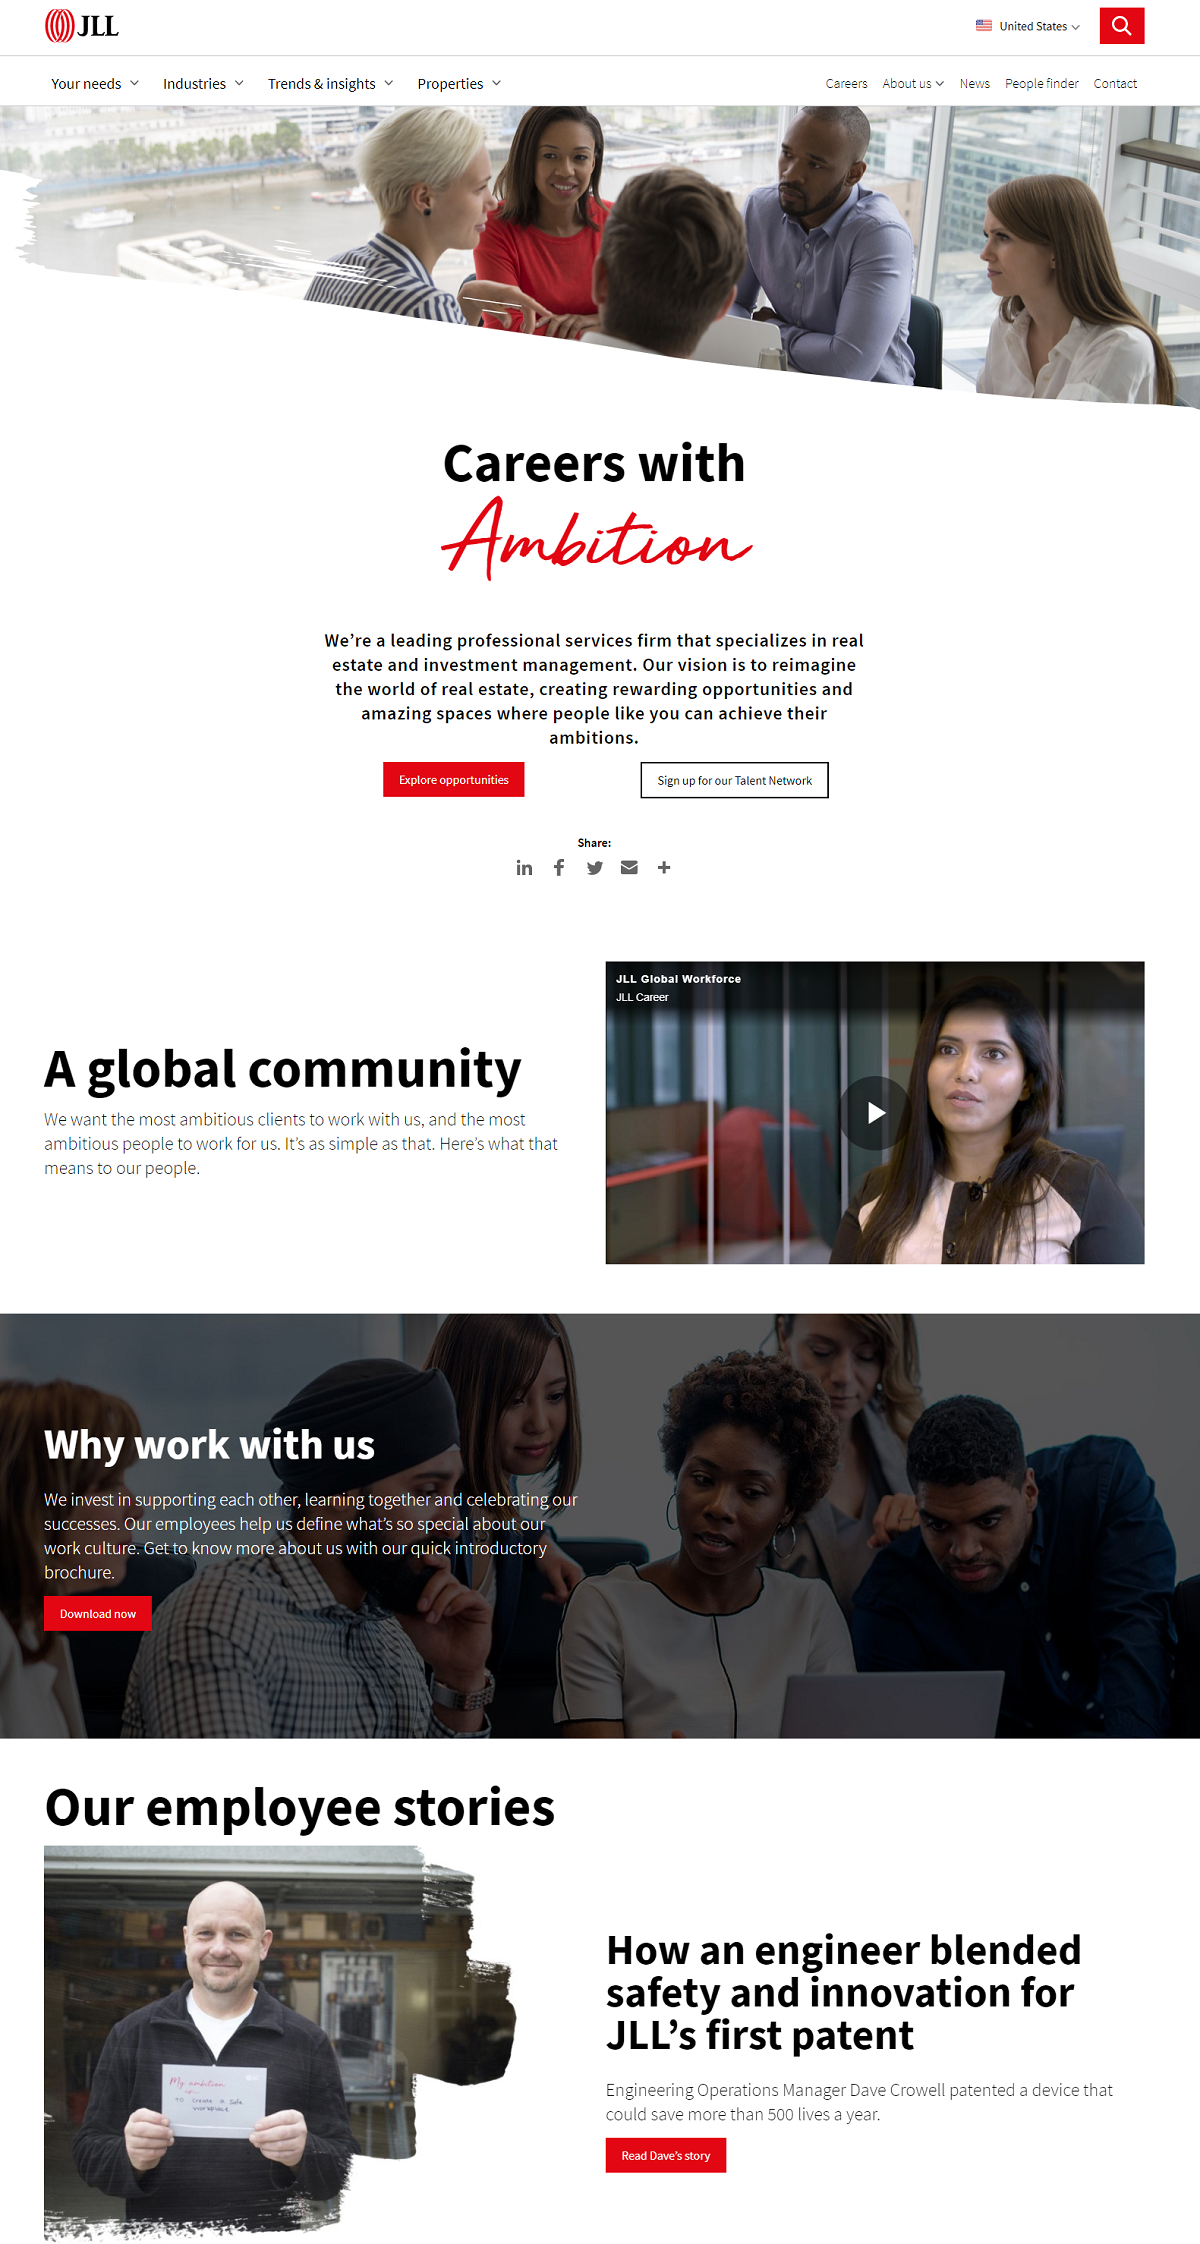 jones lang lasalle career page